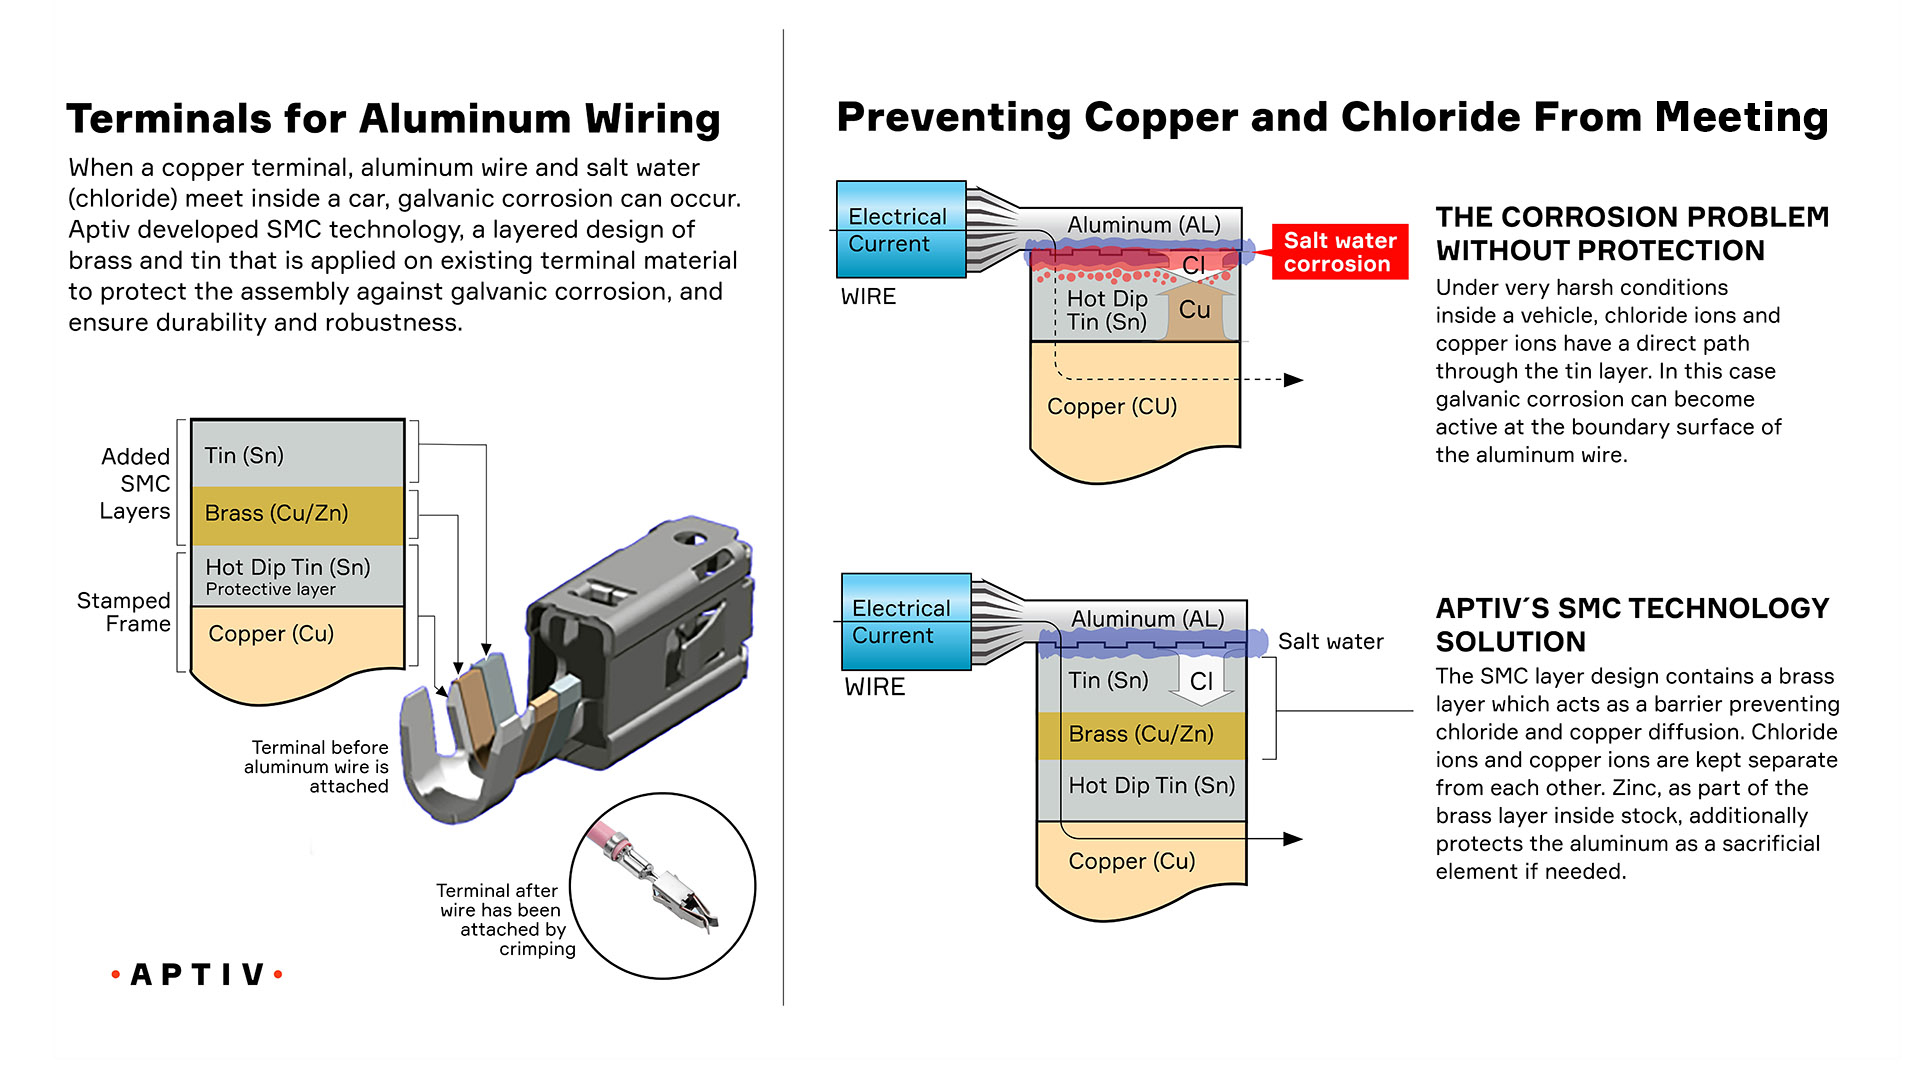 Selective Metal Coating The New Gold Standard For Automotive Wiring Harness Gets Hot Connecting Aluminum Cable And A Copper Connector To Each Other Requires Additional Complex Technical Requirements Oxide On Outer Surface Of